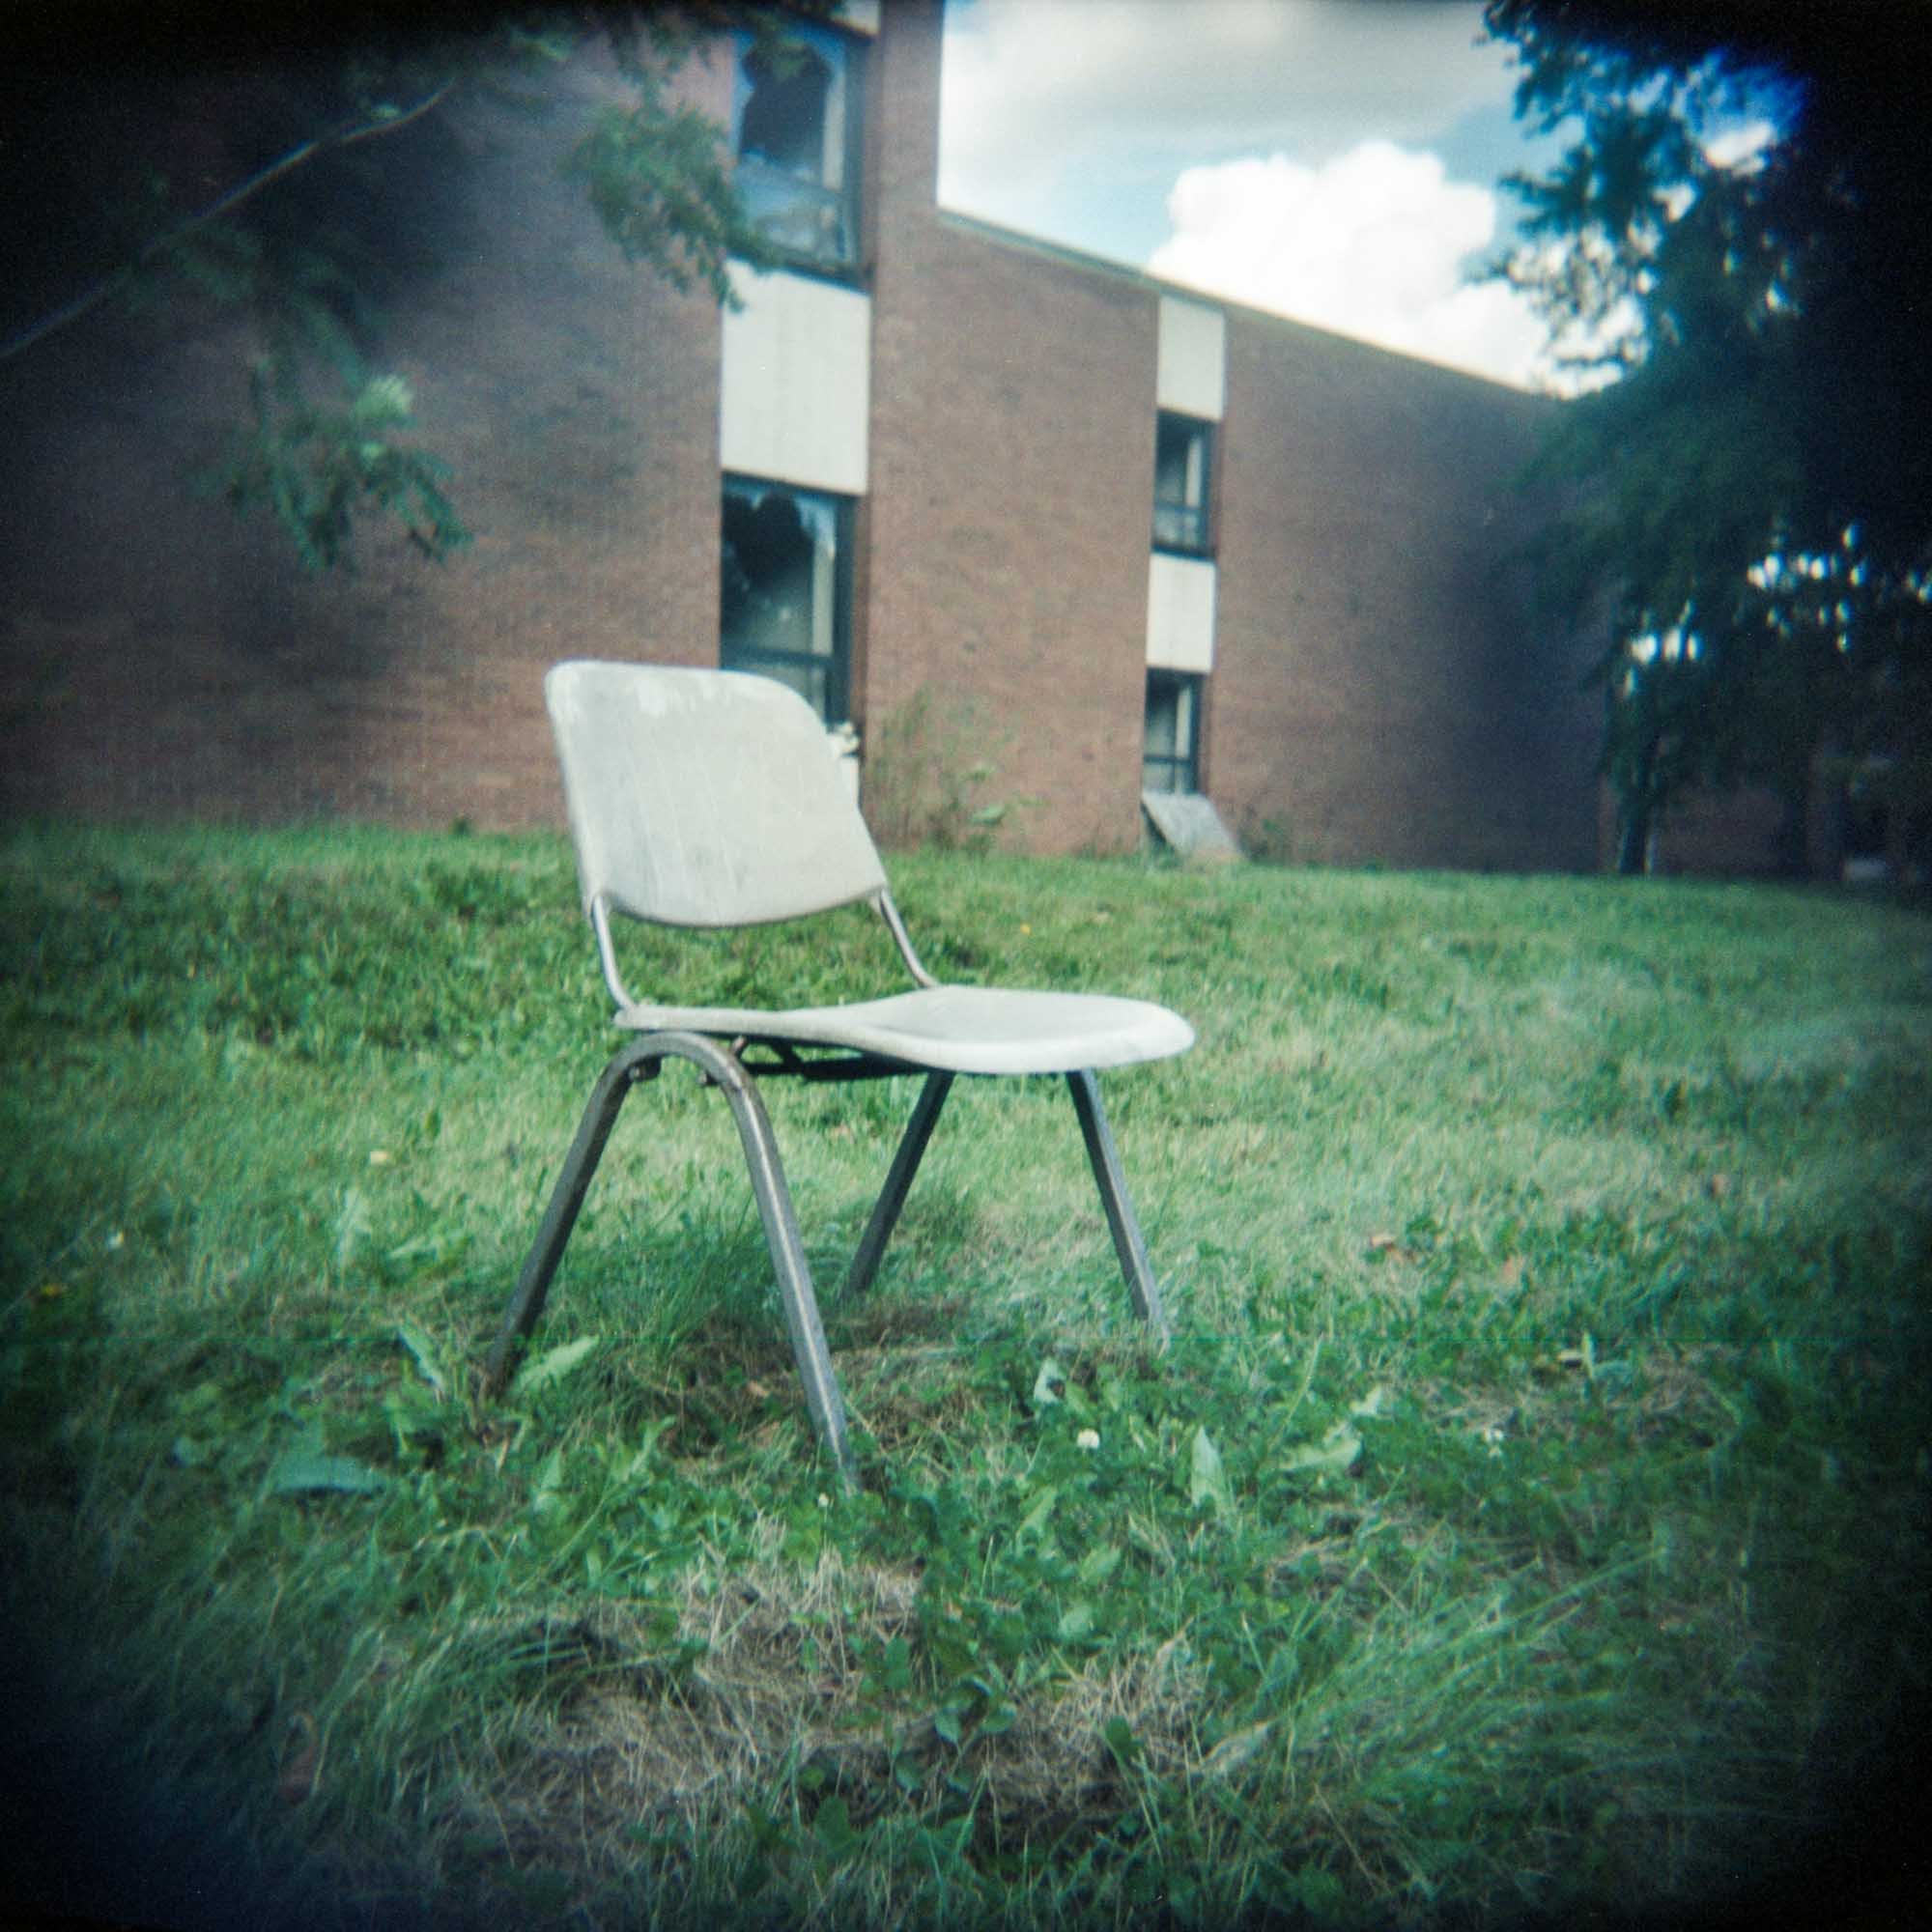 Central_State_Holga_008_Edit_final_web.jpg